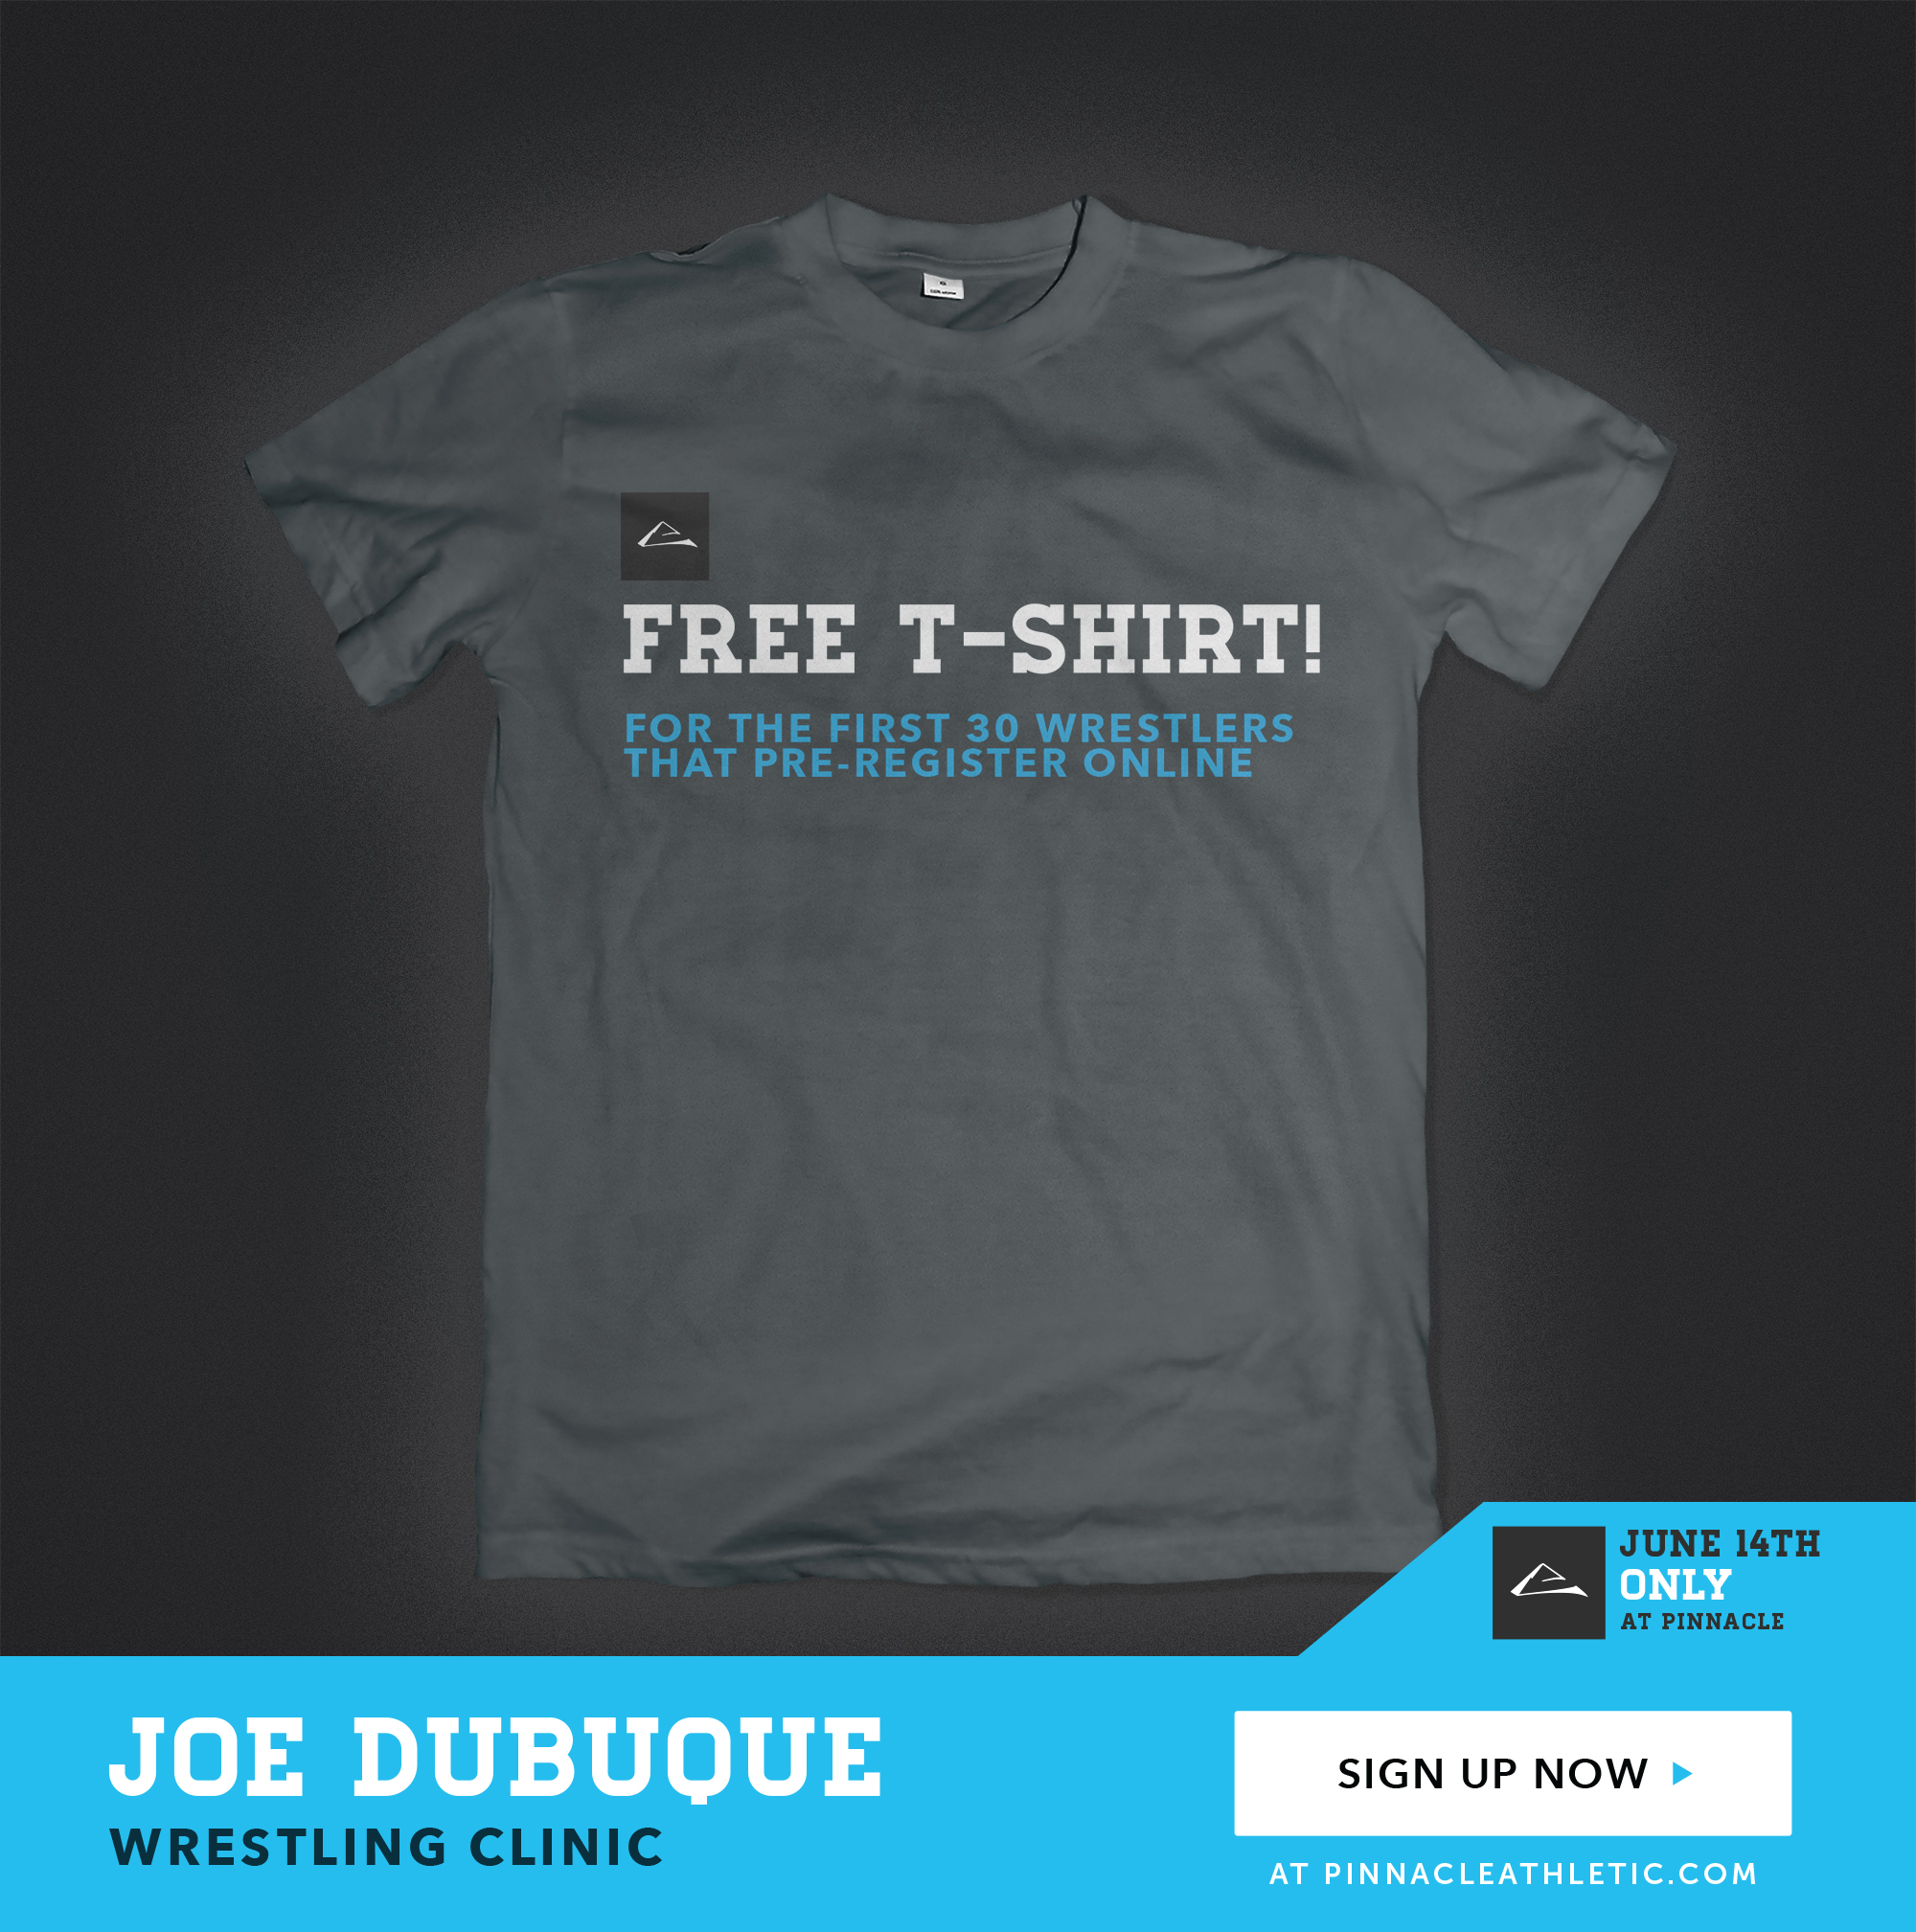 Preregister now and get a free t-shirt!